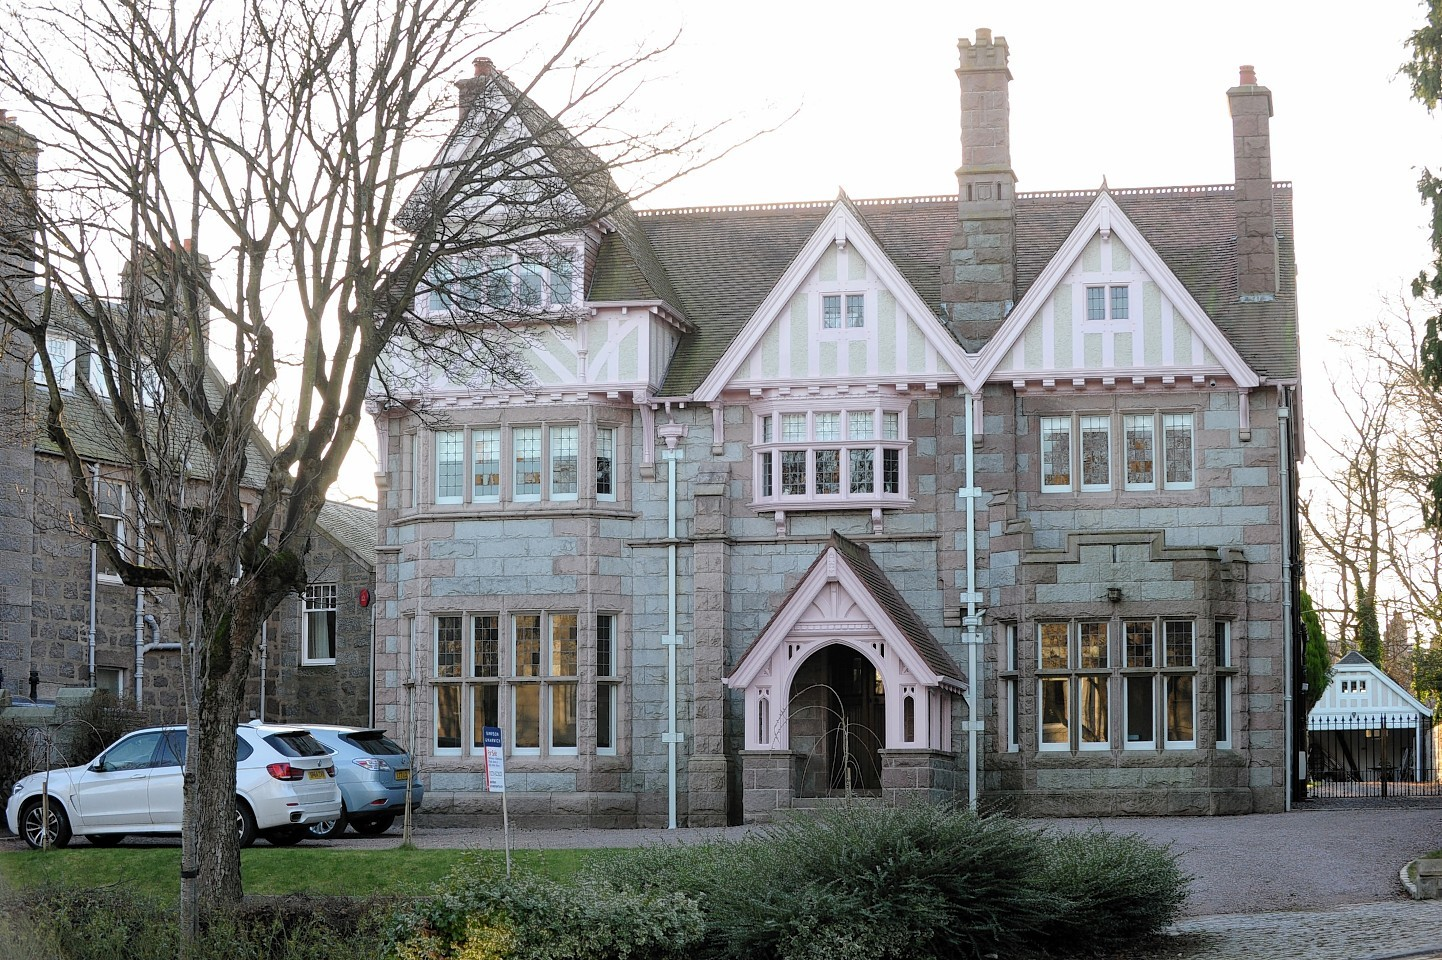 Rubislaw Den North house is currently up for sale for £3.2million